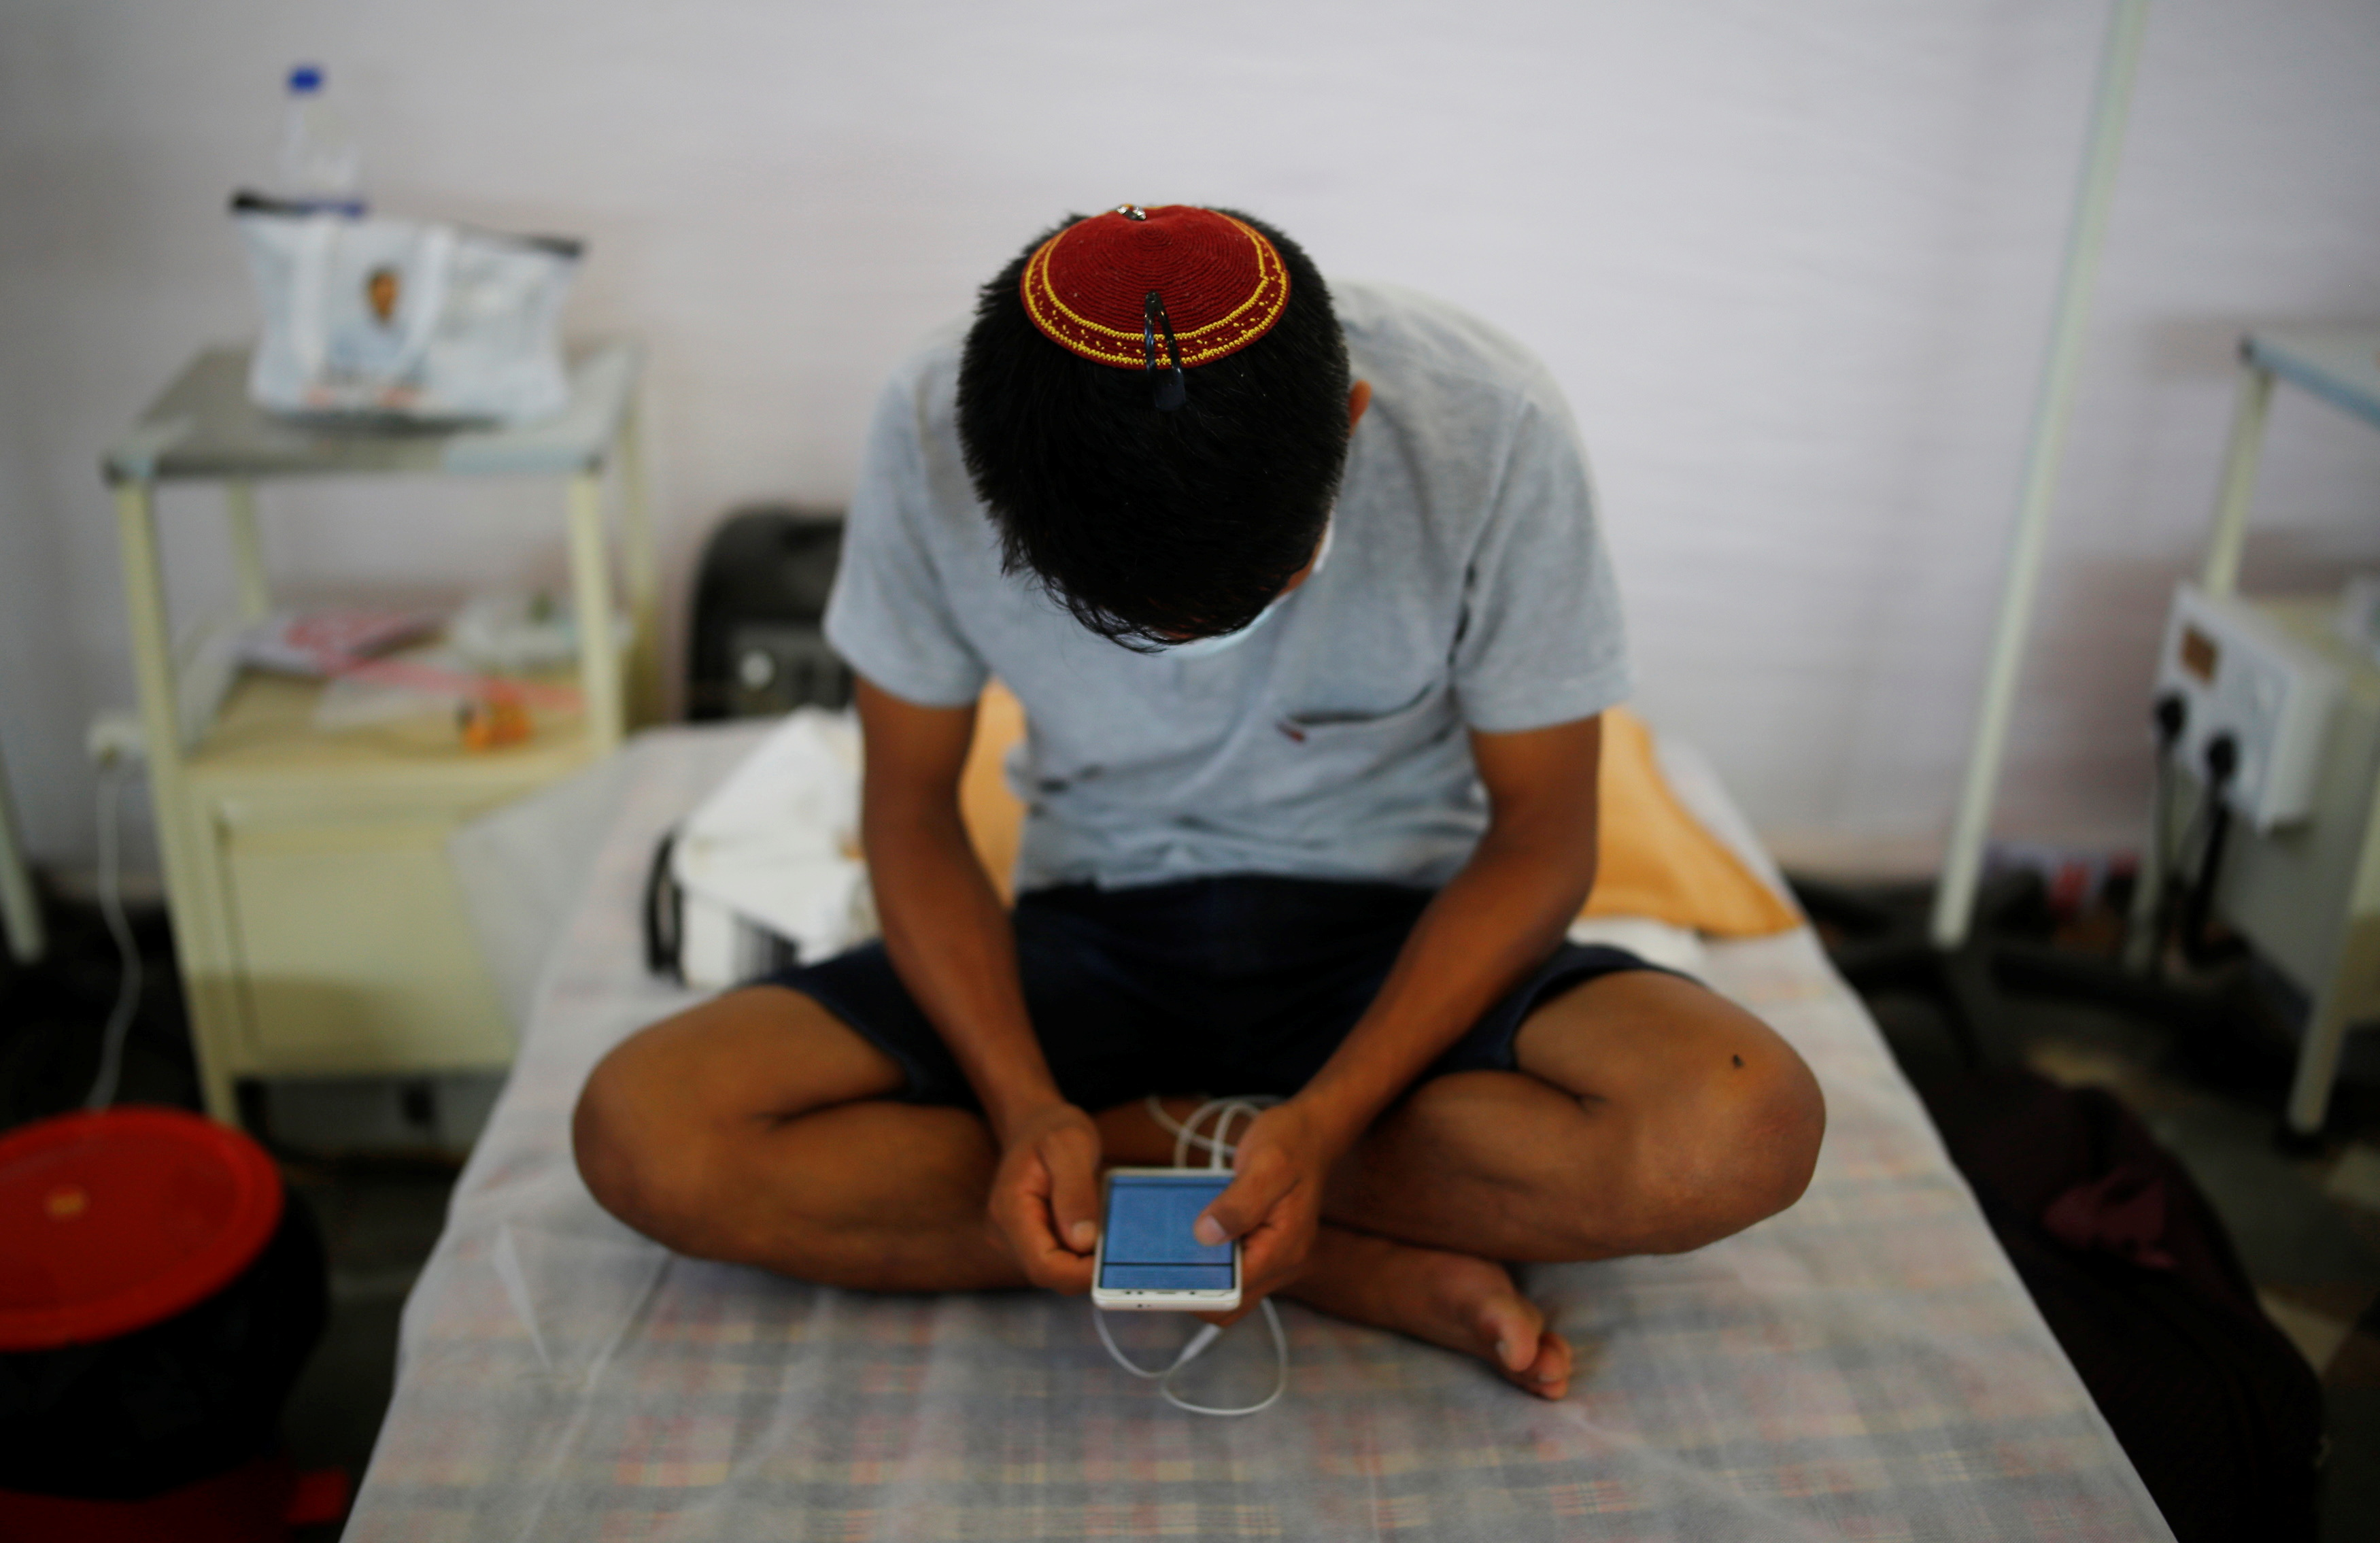 An Indian Jew, member of the Bnei Menashe, or the Children of Menashe, one of the